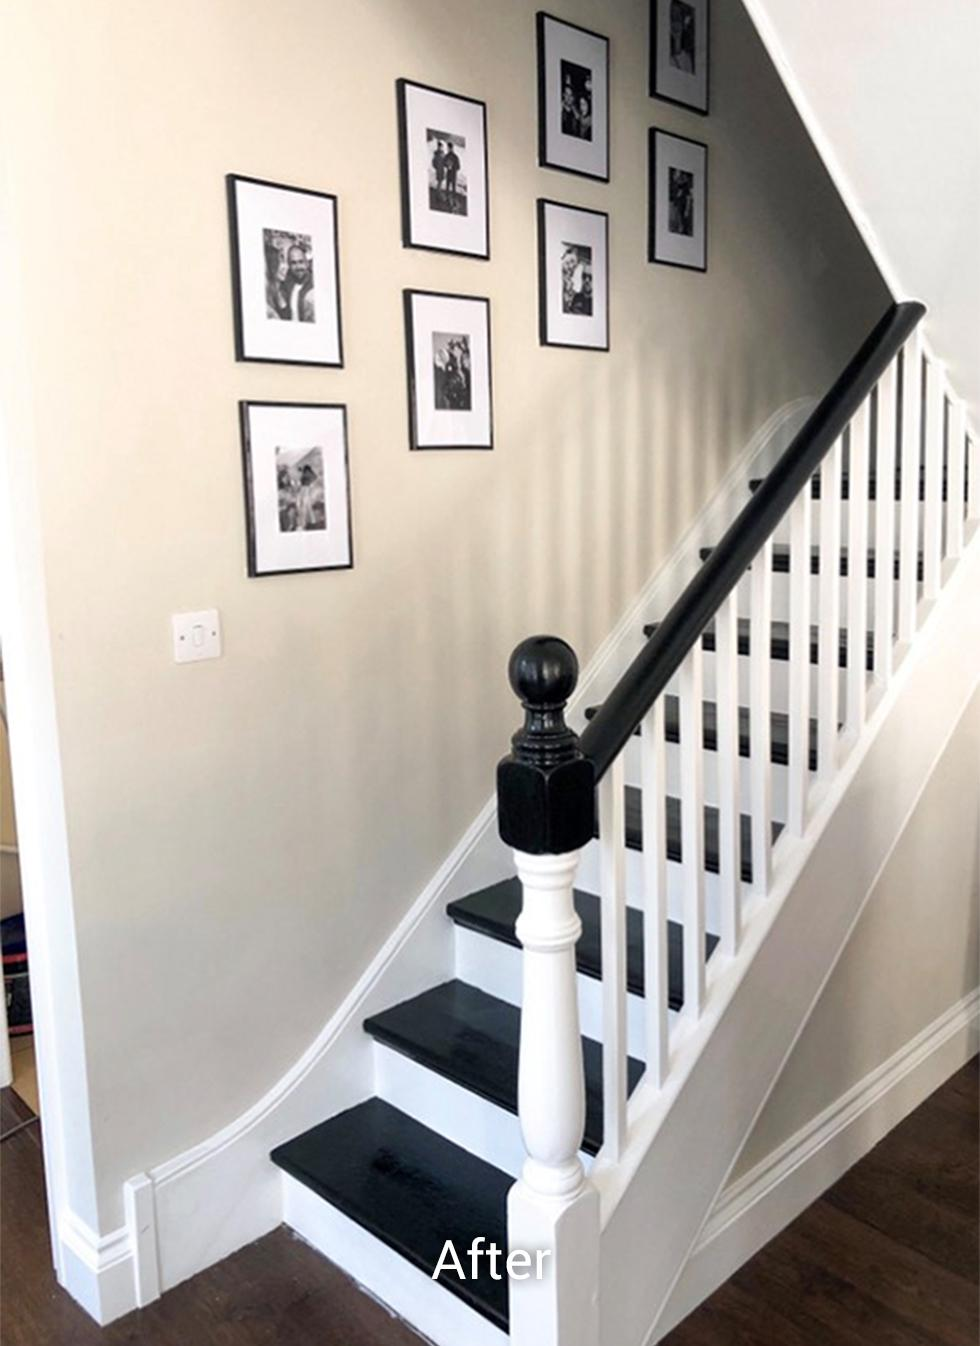 After staircase transformation